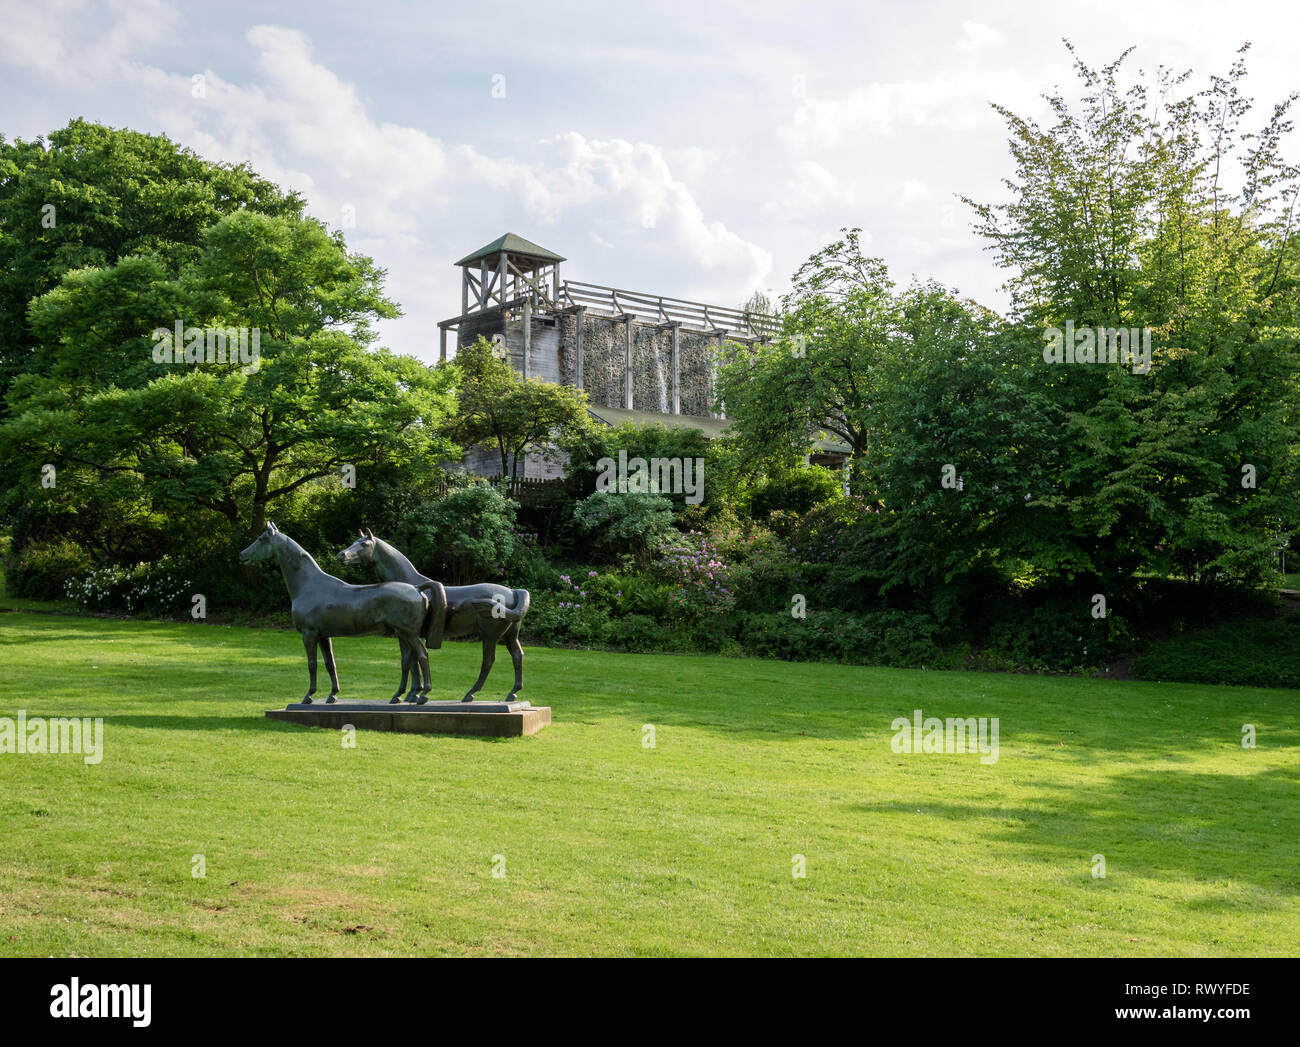 Sculpture of horses (Pferde) by Philipp Harth and graduation tower in the Gruga Park in Essen, Germany - Stock Image